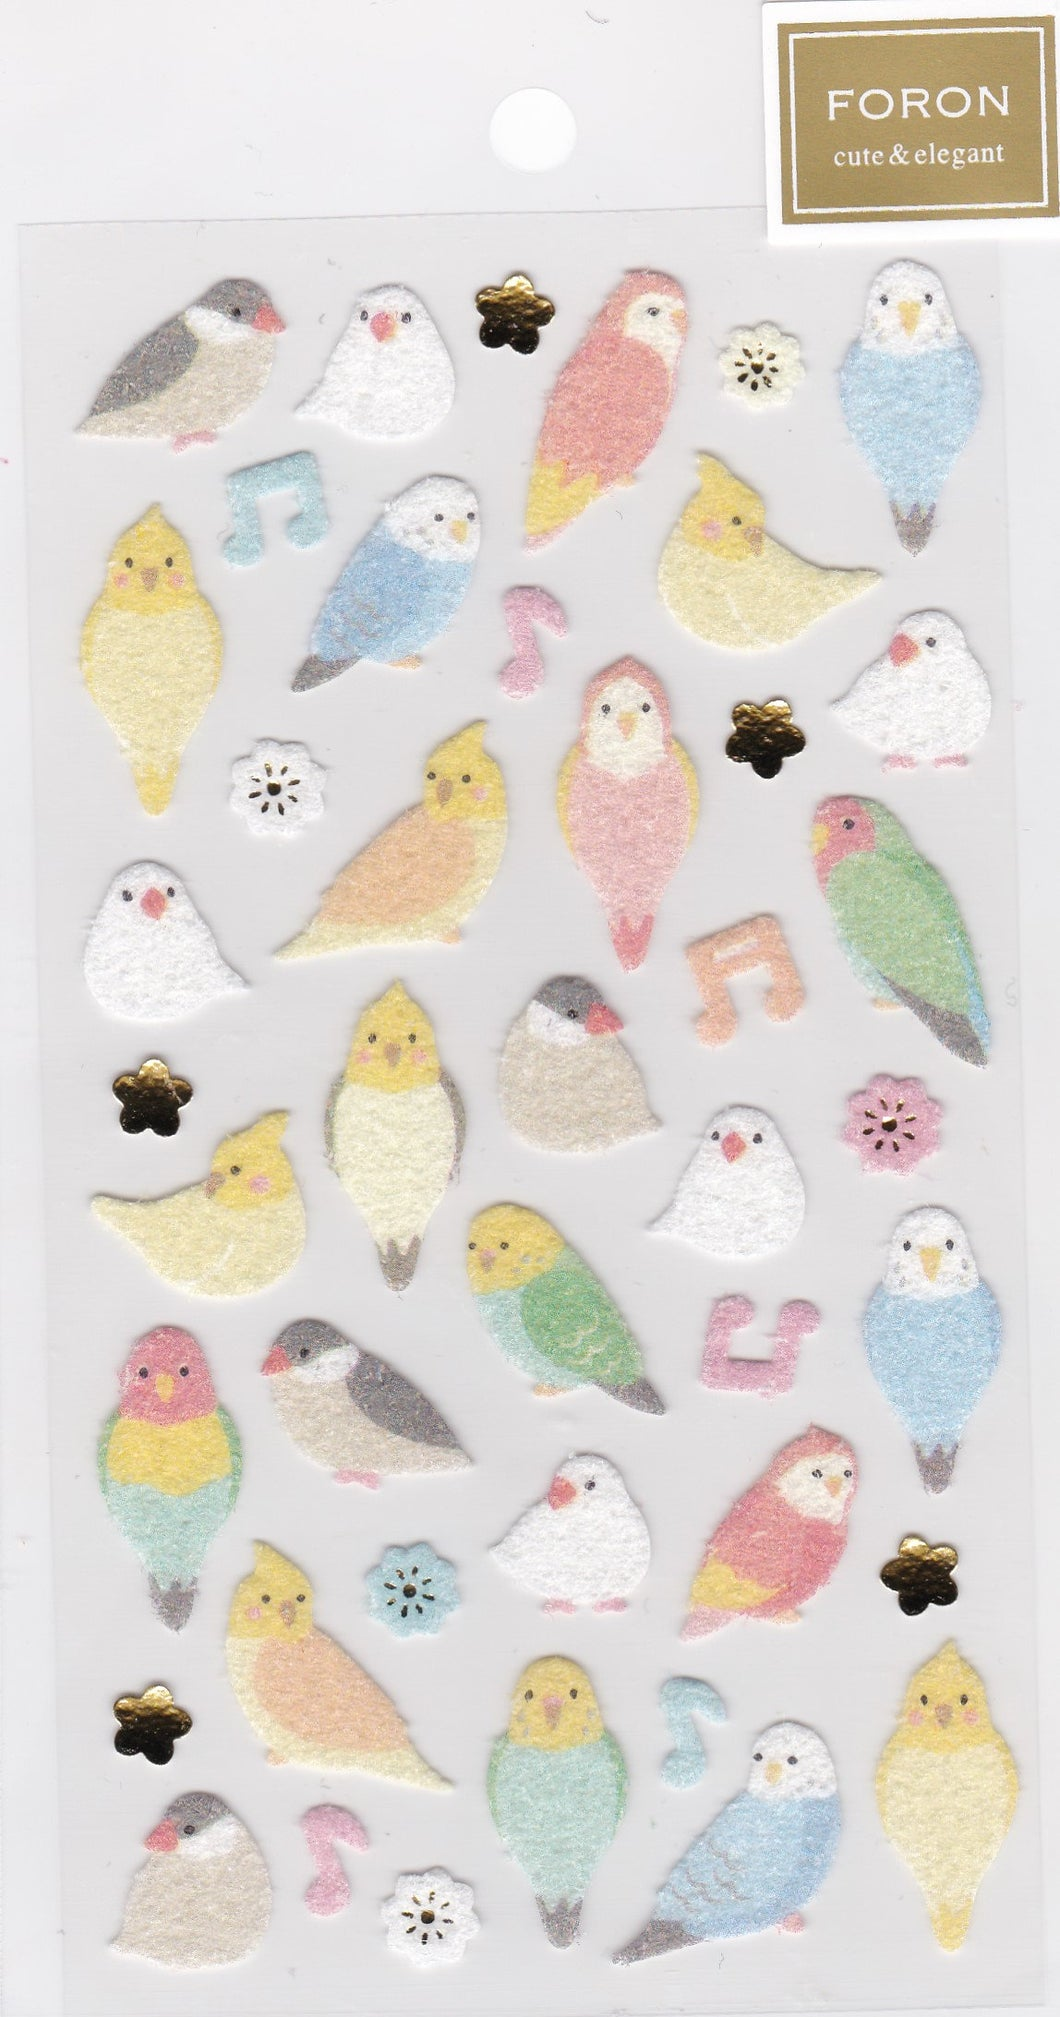 Bird Stickers Budgie Budgerigar Parakeet Java Sparrow Bourke's Parrot Cockatiel Lovebird 5214123 - Boutique Sweet Birdie